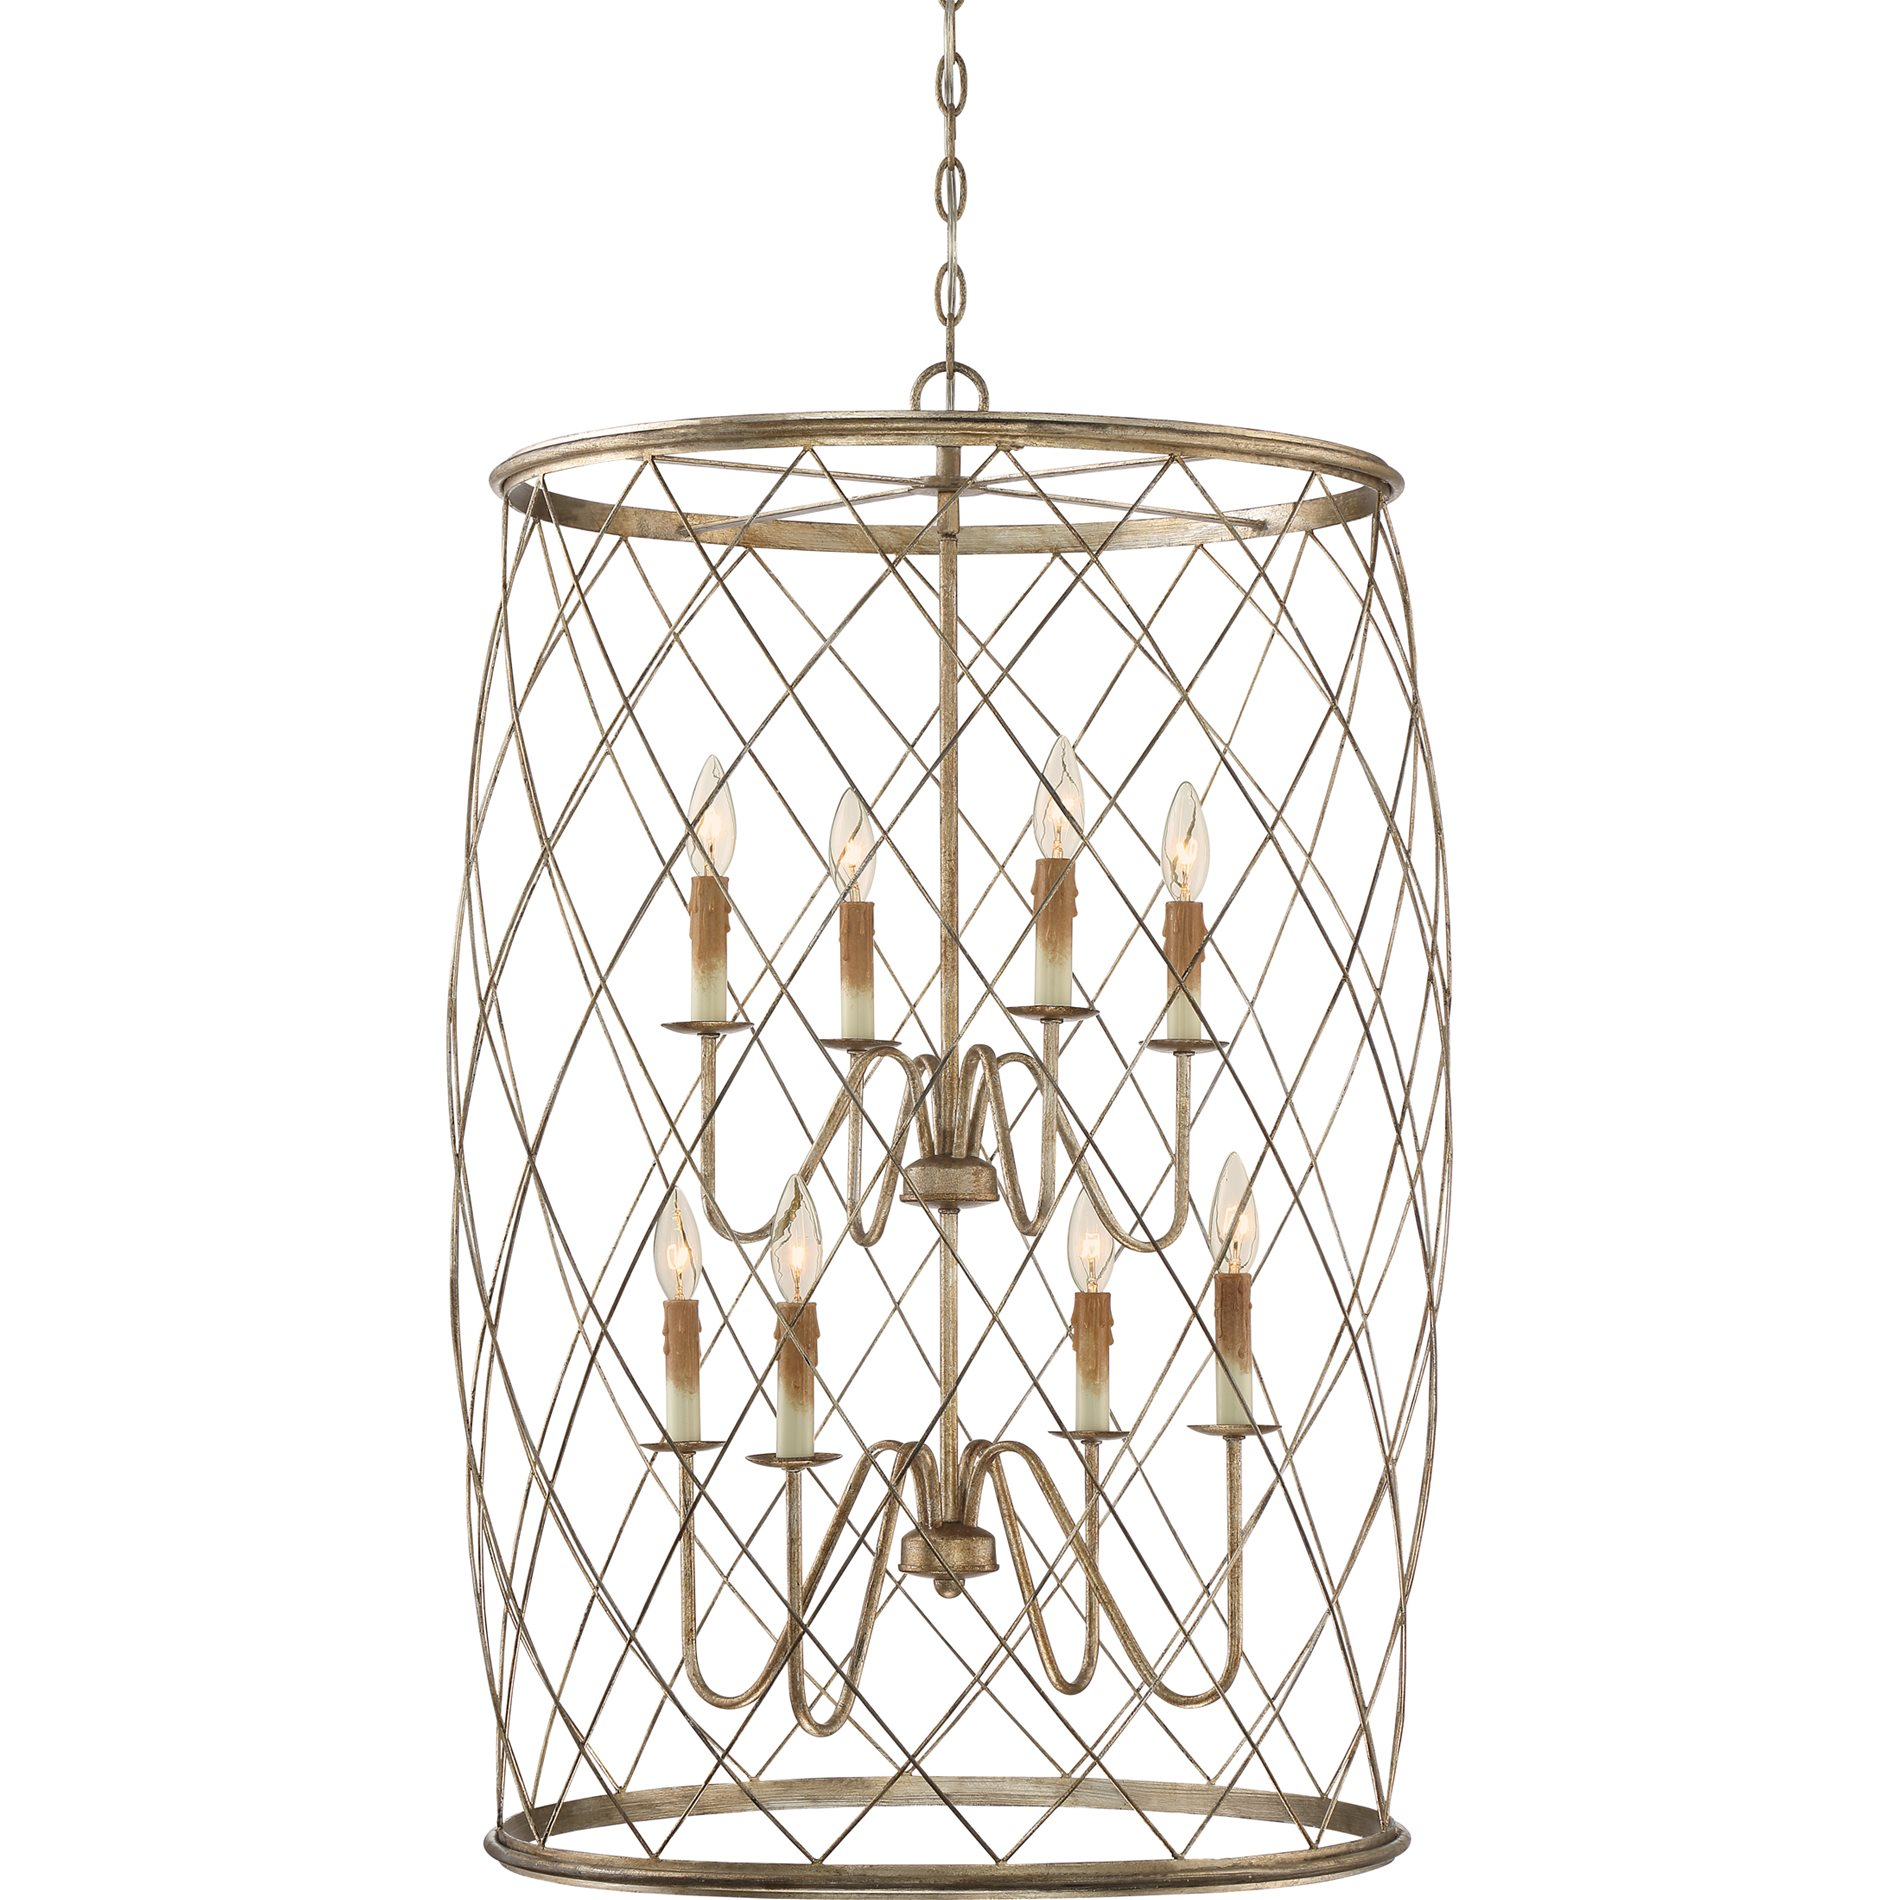 Quoizel Foyer Chandelier : Quoizel rdy cs dury transitional foyer light qz